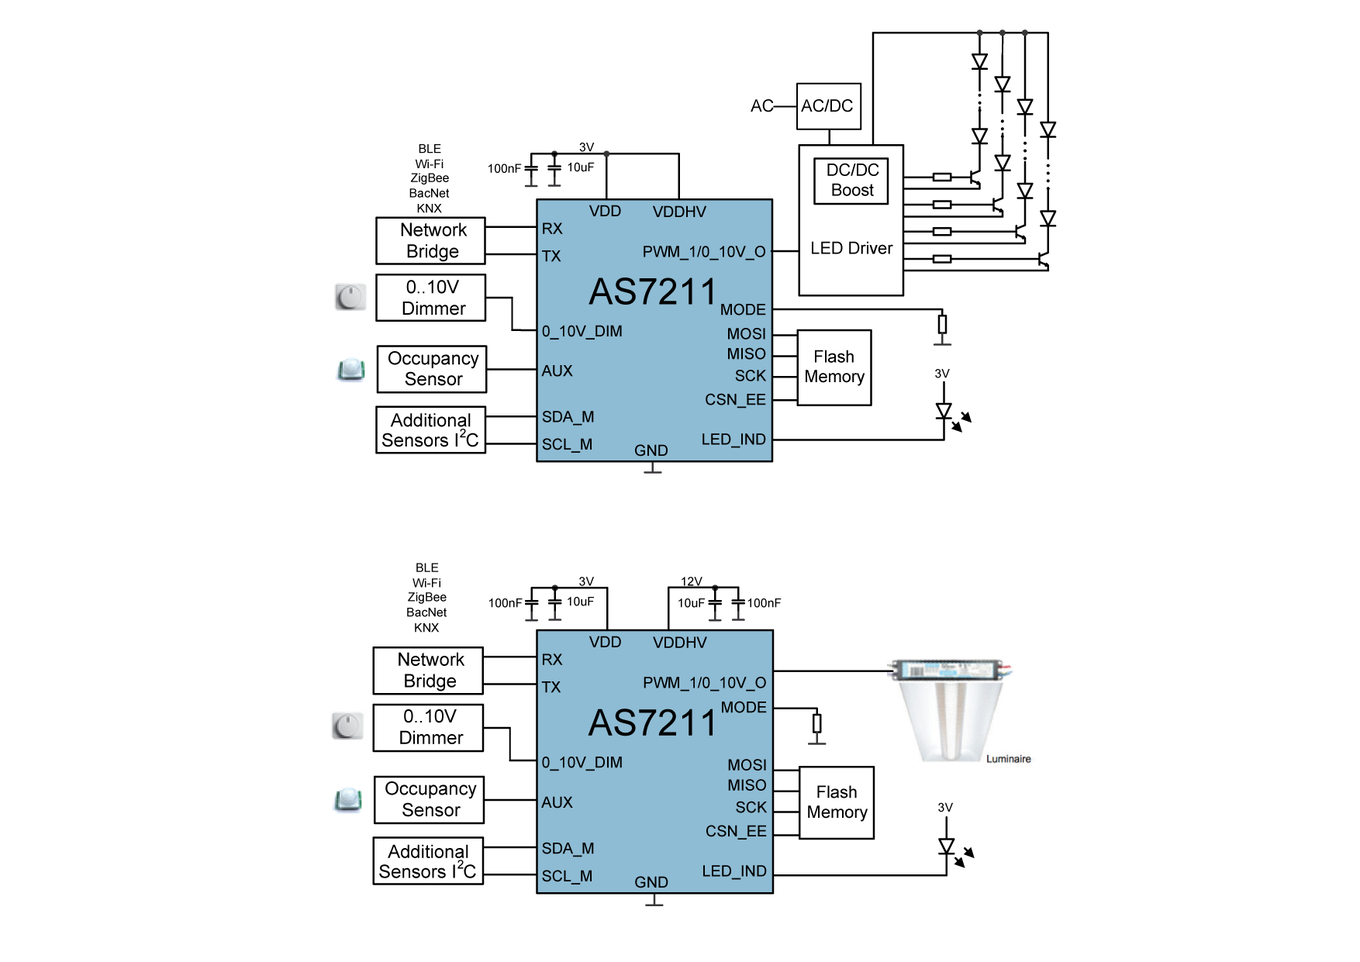 Daylight Harvesting Daylighting Ambient Light Sensing Ams 0 10v Dimmer Circuit Diagram Direct Pwm To Led Drivers Or Analog Standard Dimming Ballasts A Simple Text Based Smart Lighting Command Set And Serial Uart Interface